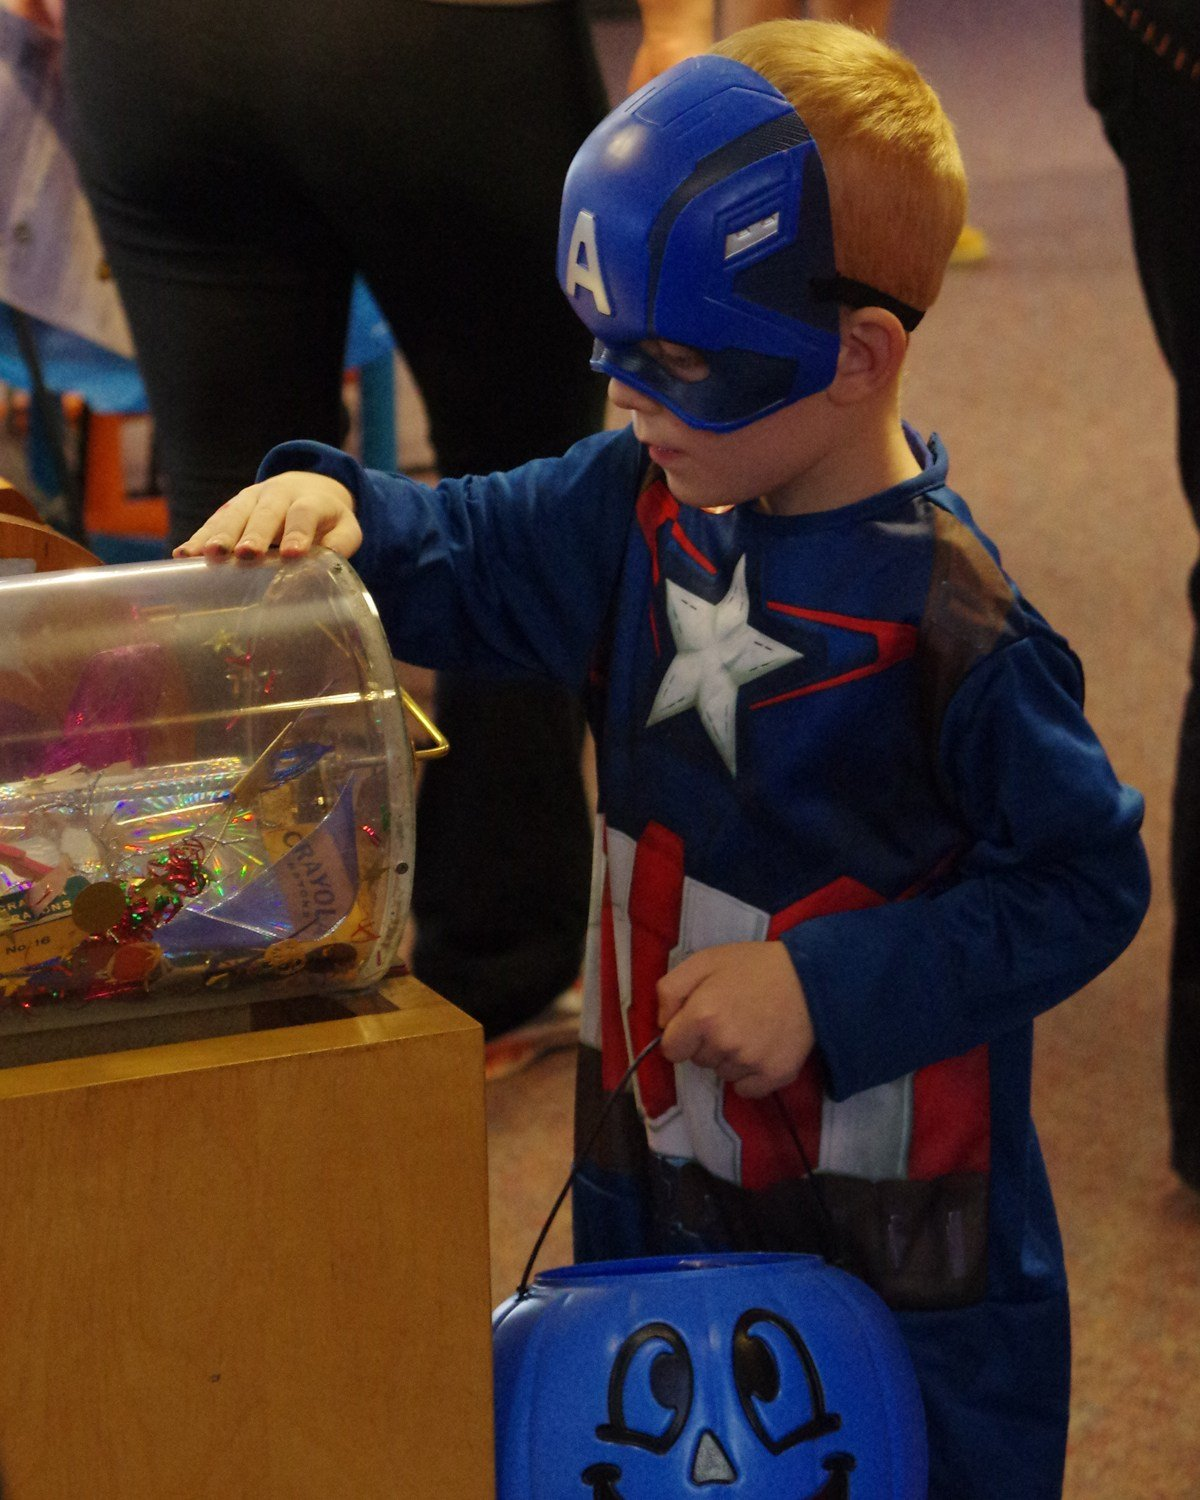 Trick-or-treating and other activities at Puebloween event.